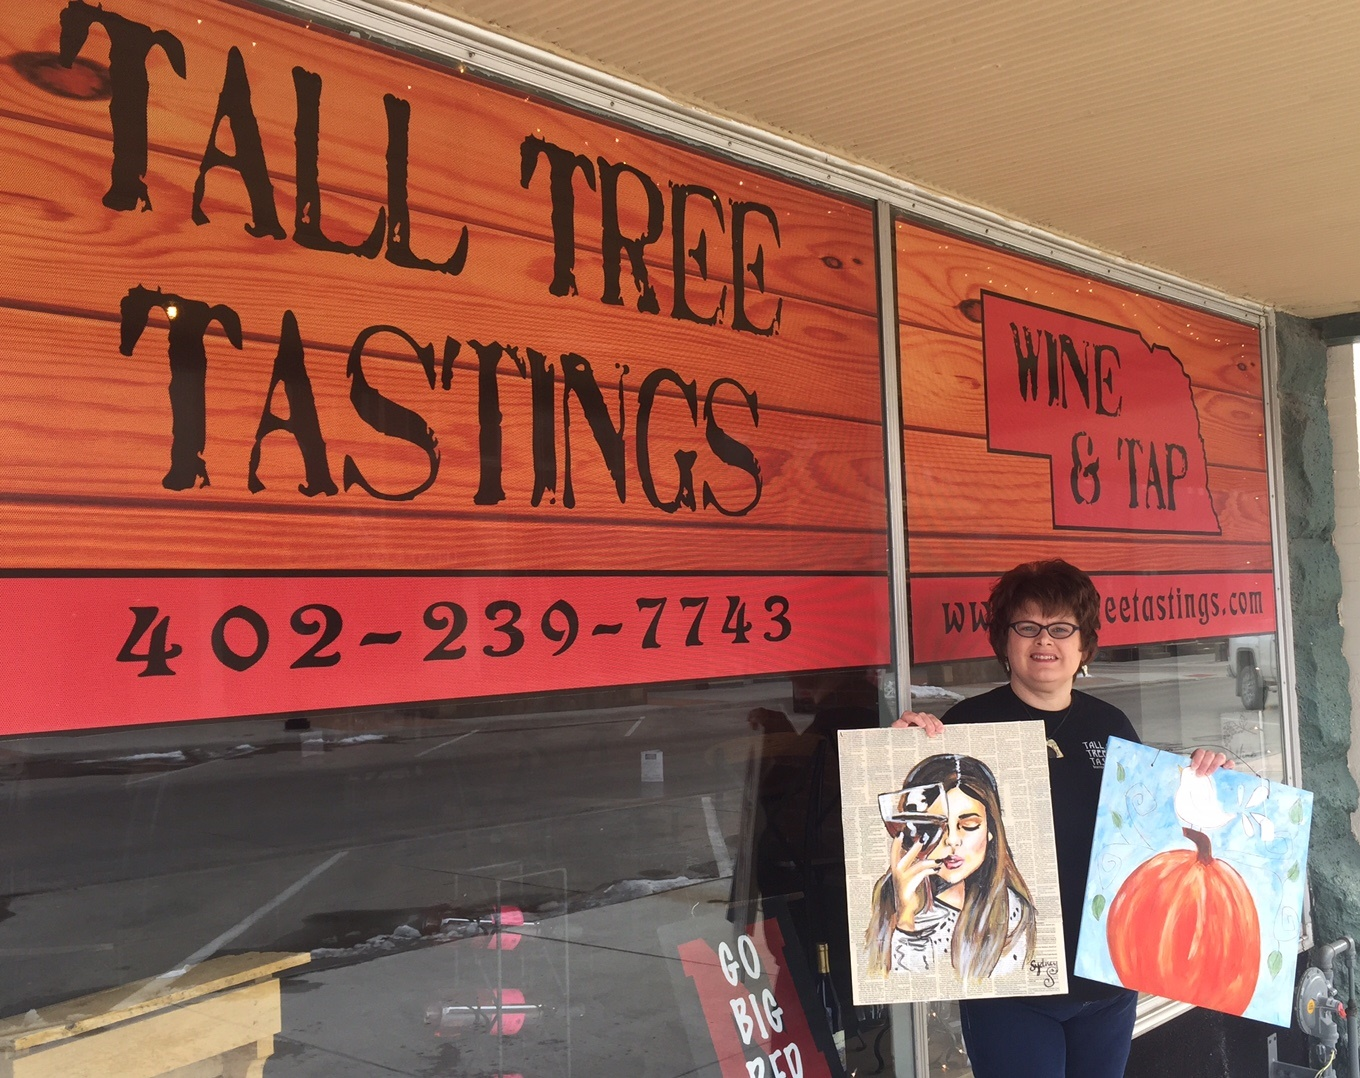 Tall Tree Tastings - A New Business & Success Story Main Photo